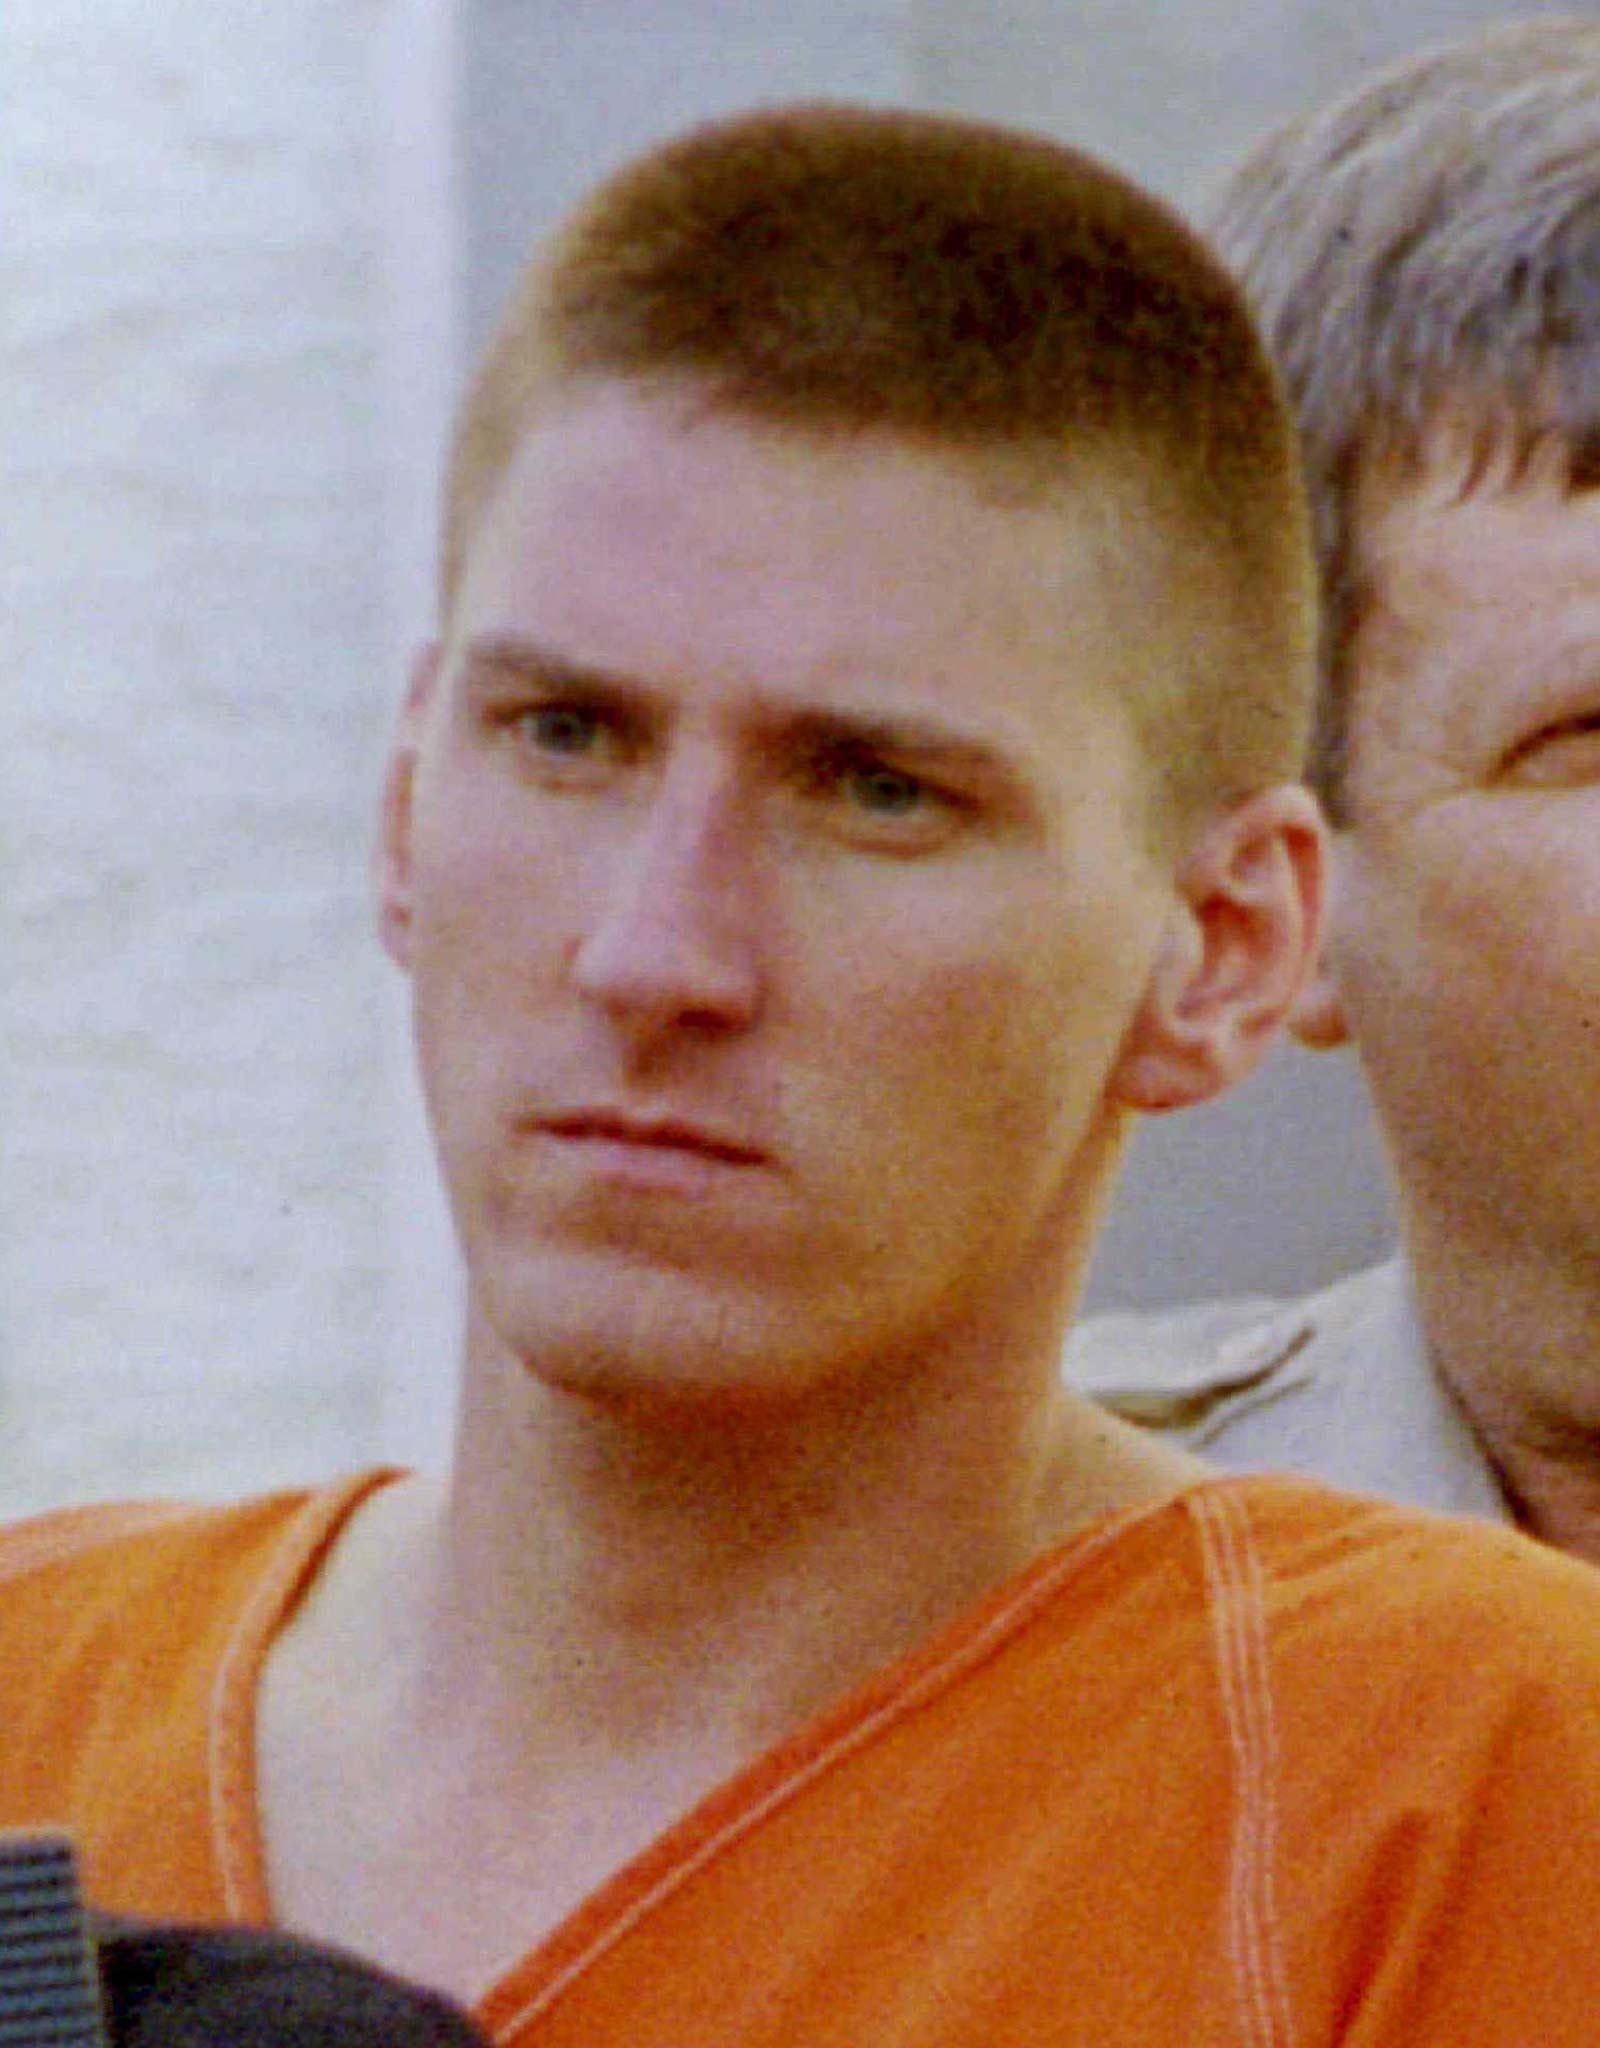 FILE PHOTO 21APR95 - The judge in the Oklahoma City bombing trial rejected Timothy McVeigh's attempt to postpone his trial or move it to a remote location March 17, paving the way for the trial to begin as planned in Denver March 31. Attorneys for McVeigh, pictured in this April 21, 1995 file photo, claimed that prejudicial media coverage would prevent him from getting a fair trial.  USA BLAST